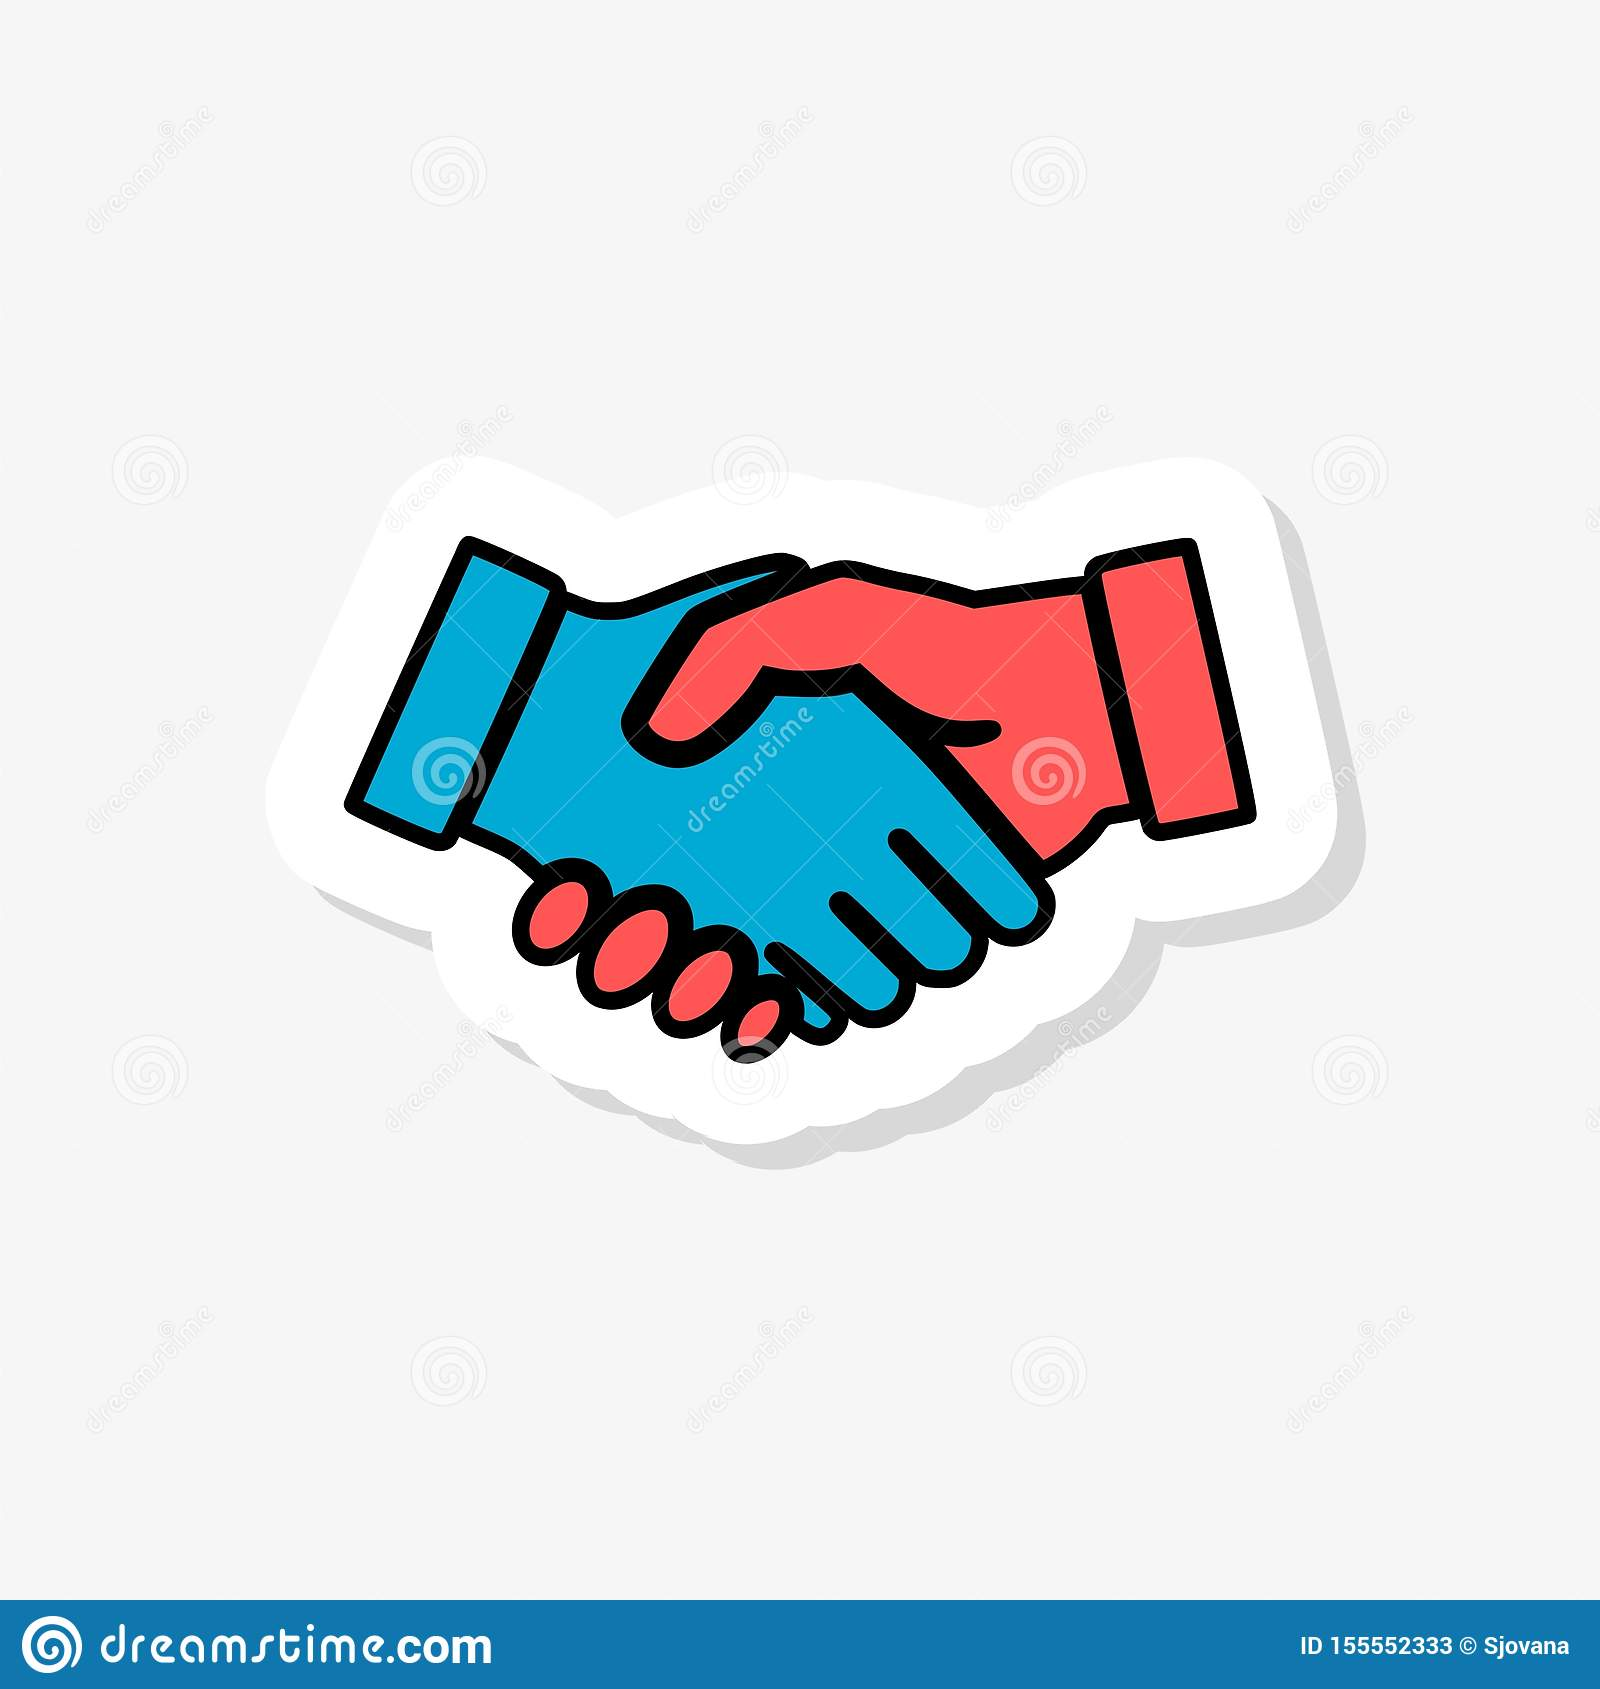 Shaking hands sticker icon isolated on white background. Shaking hands icon simple sign